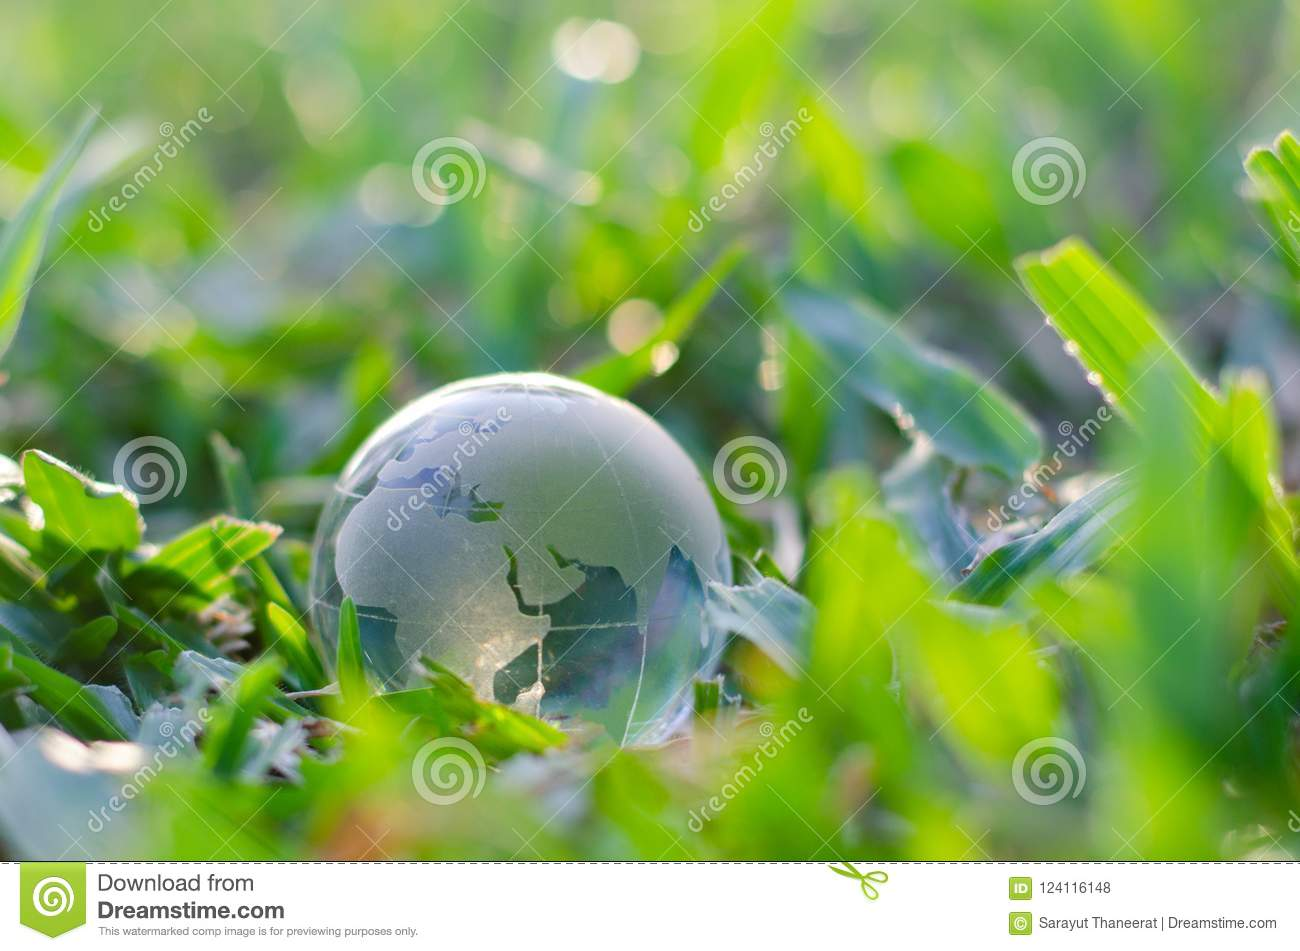 Concept Save The World Save Environment The World Is In The Grass Of